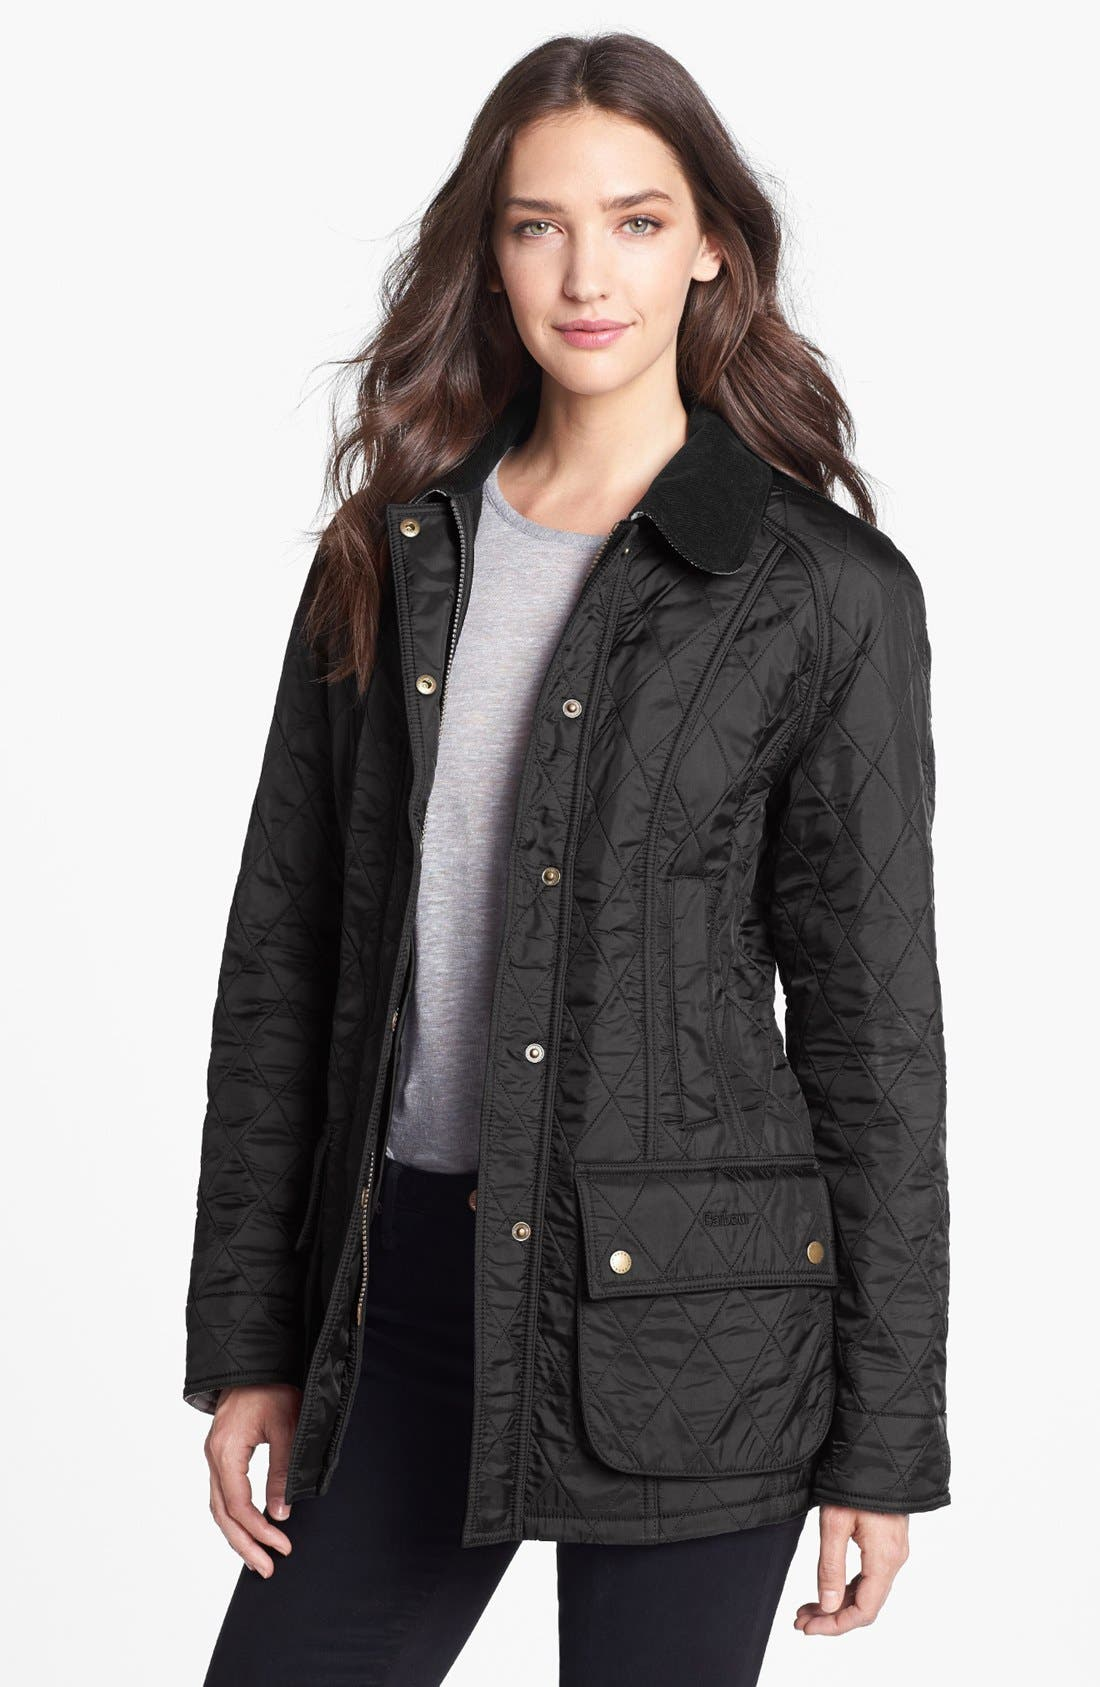 Alternate Image 1 Selected - Barbour 'Beadnell' Quilted Jacket